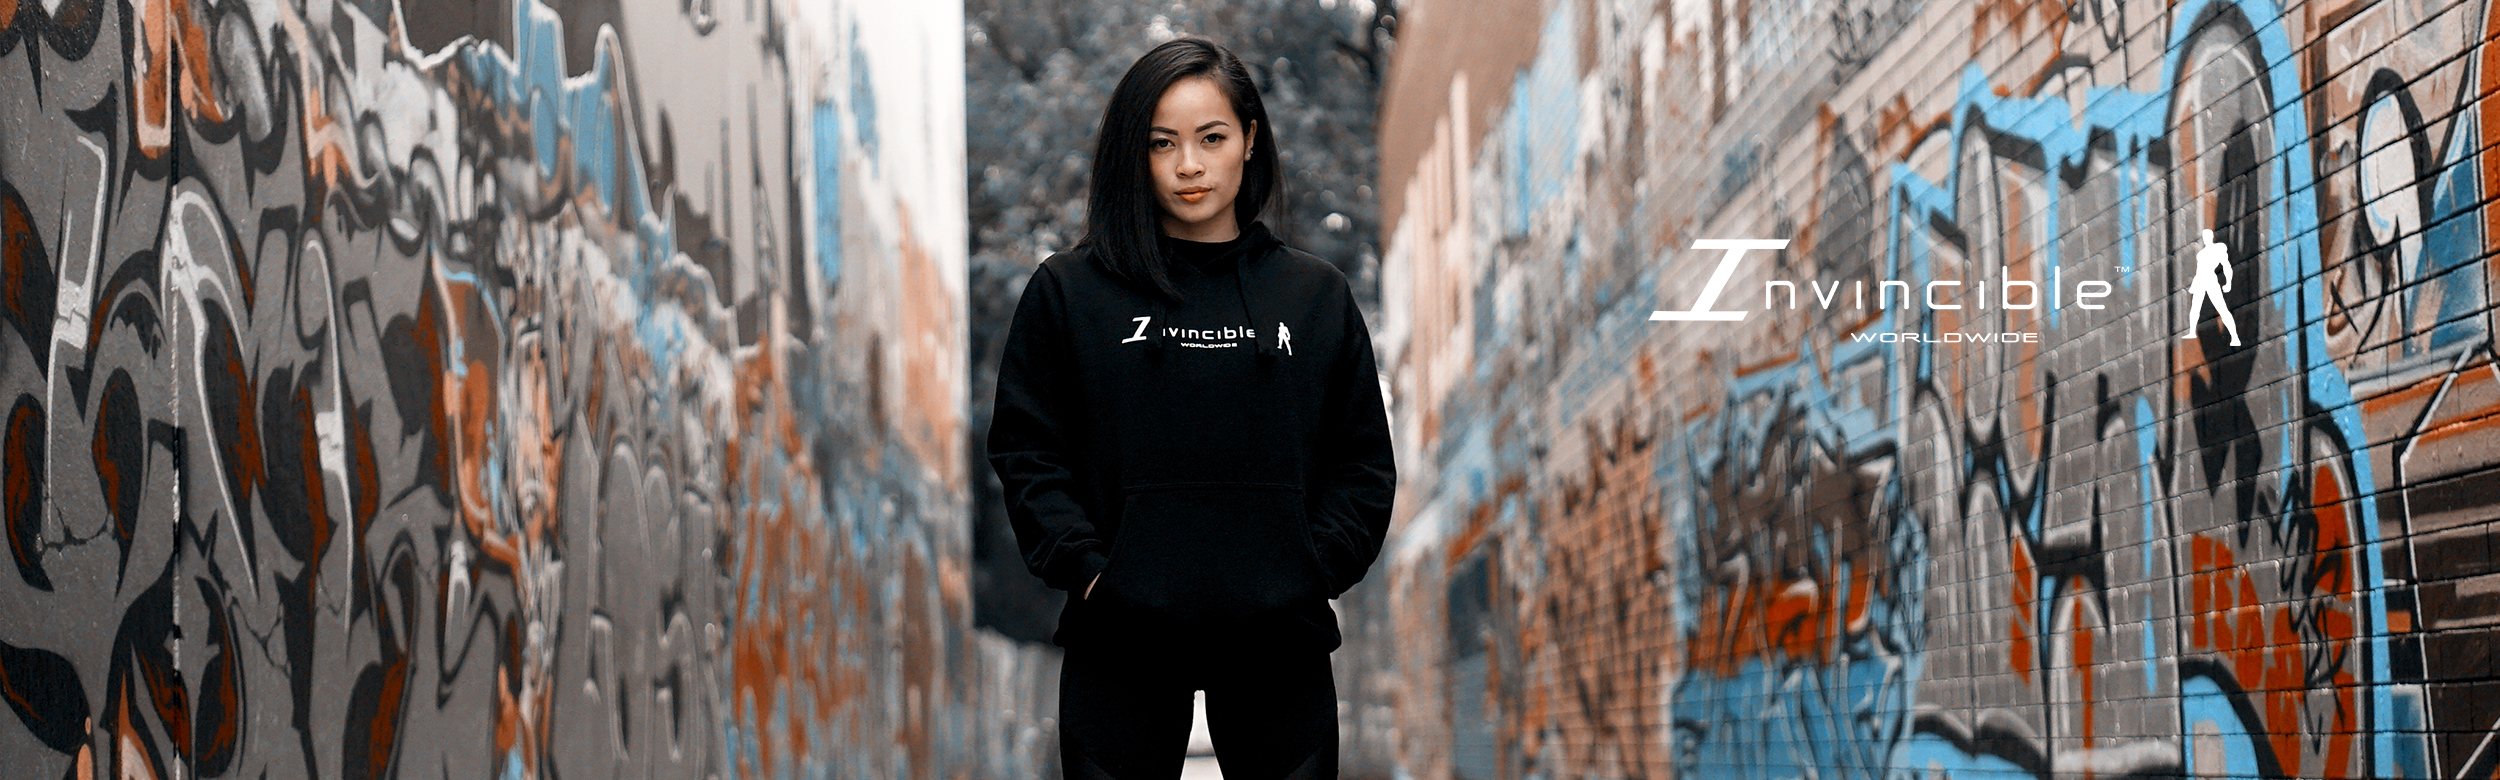 Invincible Worldwide Hoodies